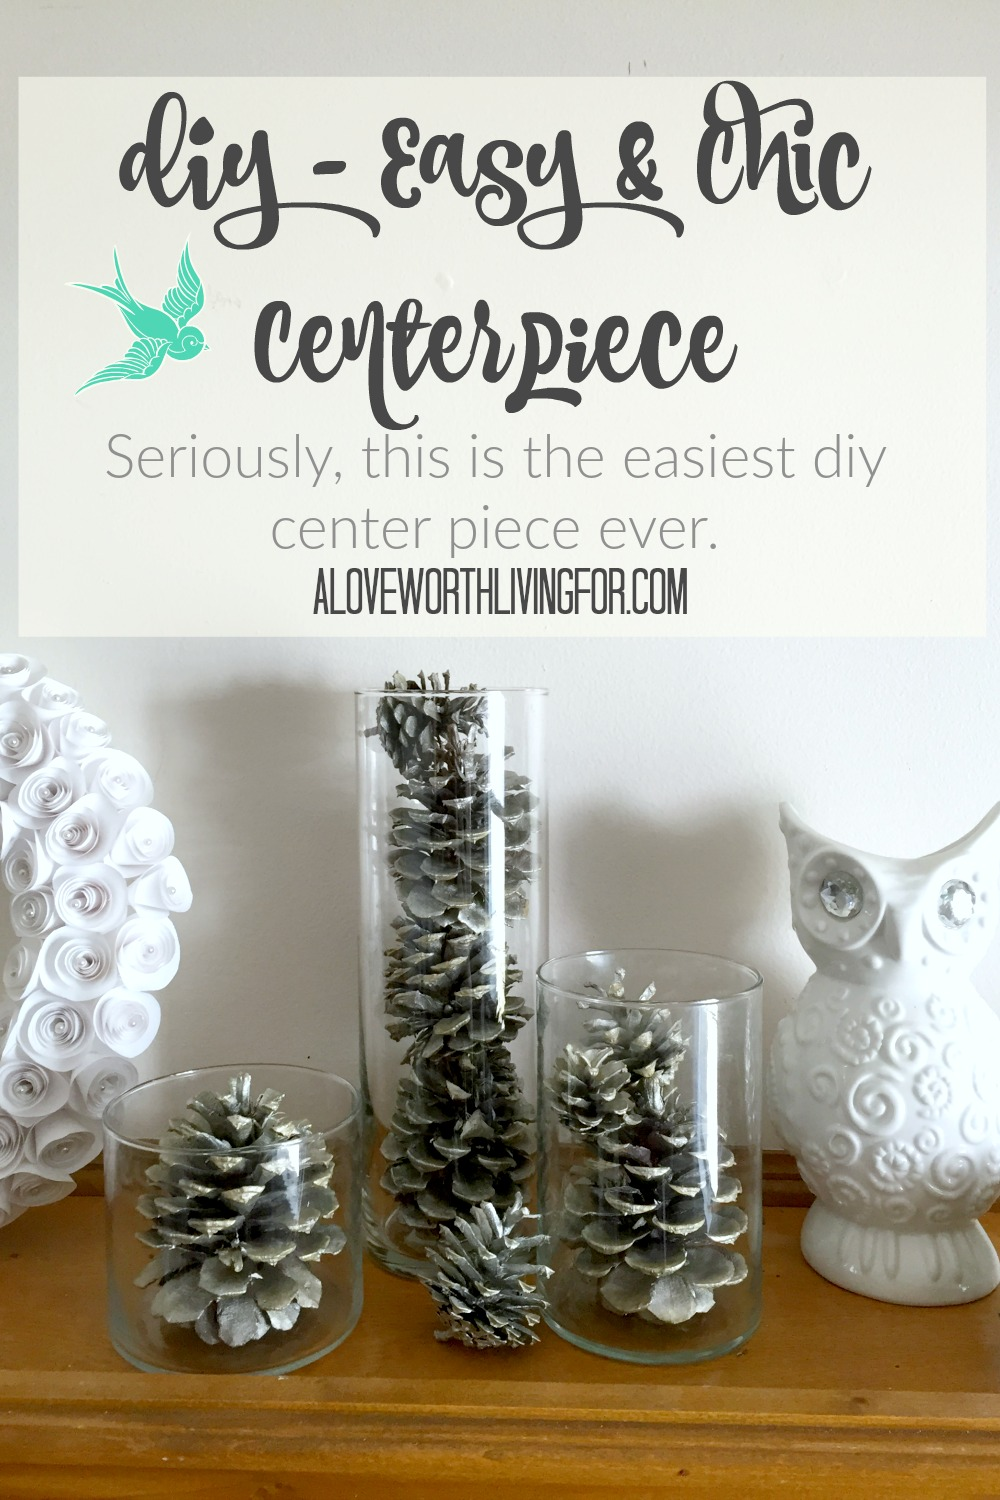 The holidays are almost here & if you are like me, you are super busy this time of year! I usually put off decorating until the last minute. Well here a a SUPER easy center piece diy! Seriously it is so easy and it takes no time at all yet it is still super chic. Impress all you friends with this simple project! by A Love Worth Living For